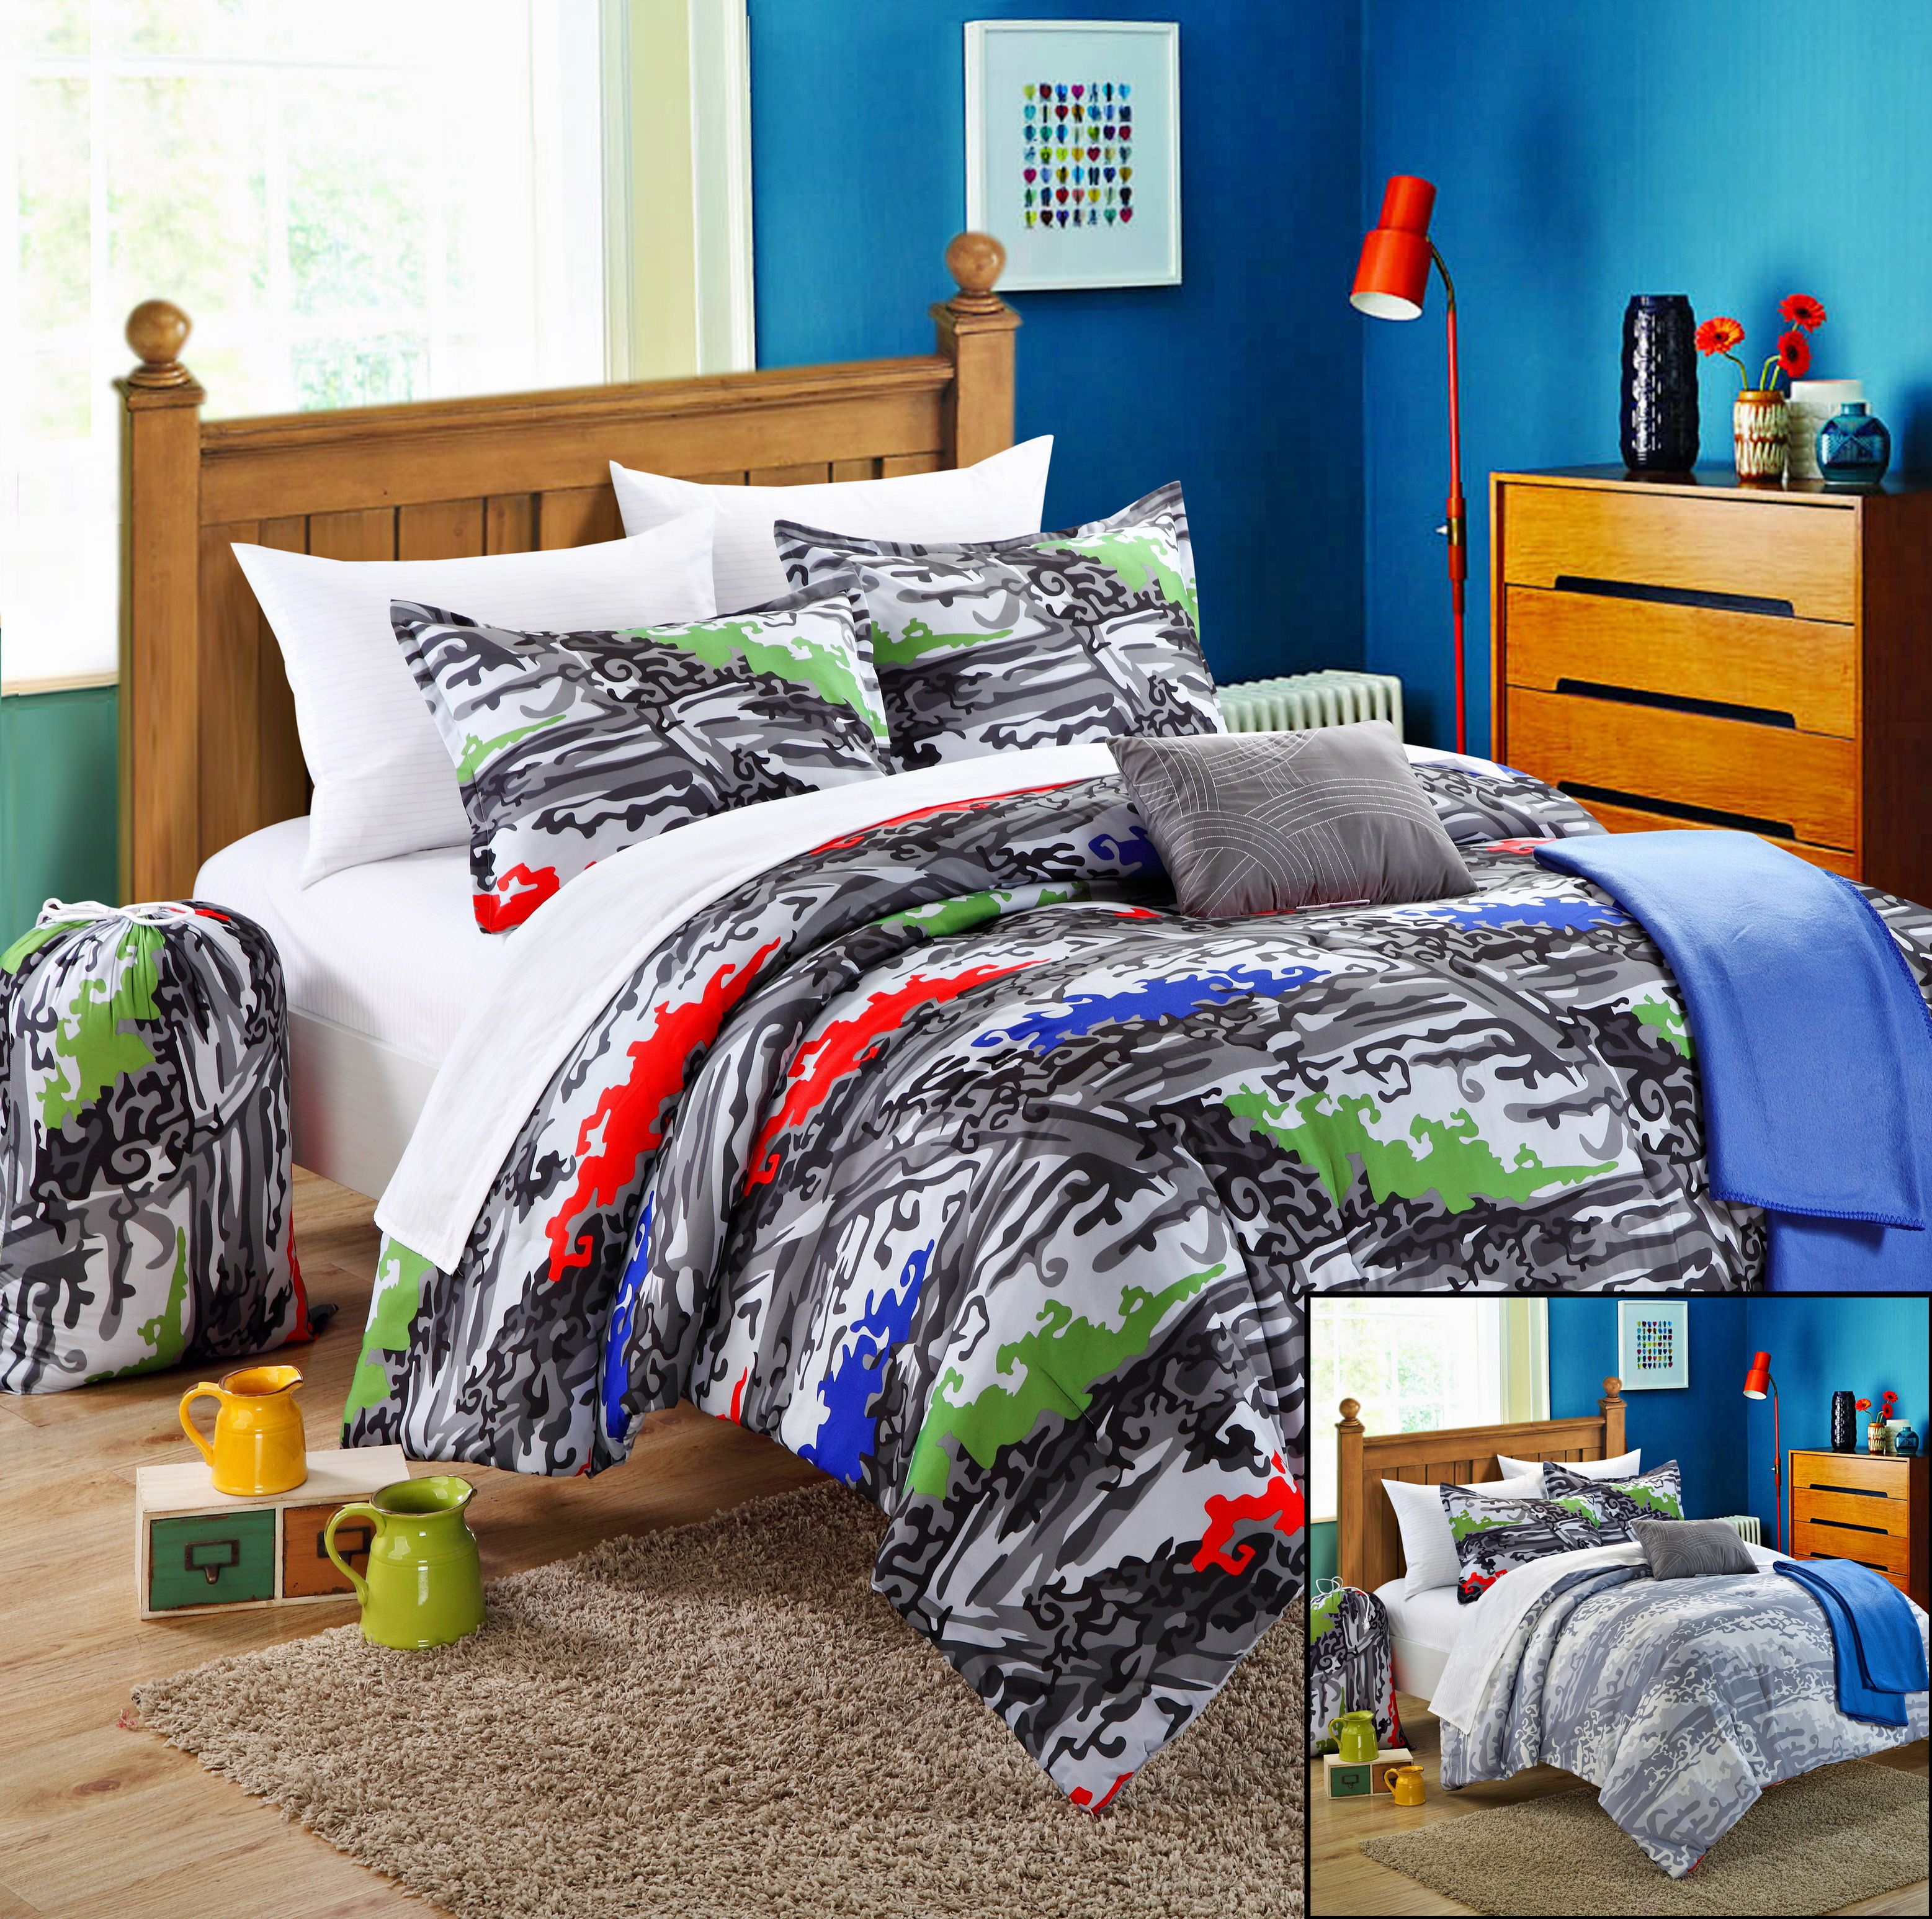 pillows long decorative student backtoschool shams set pin chic size luxbed included bedding and piece xtra dorm twin sheet comforters comforter techno home